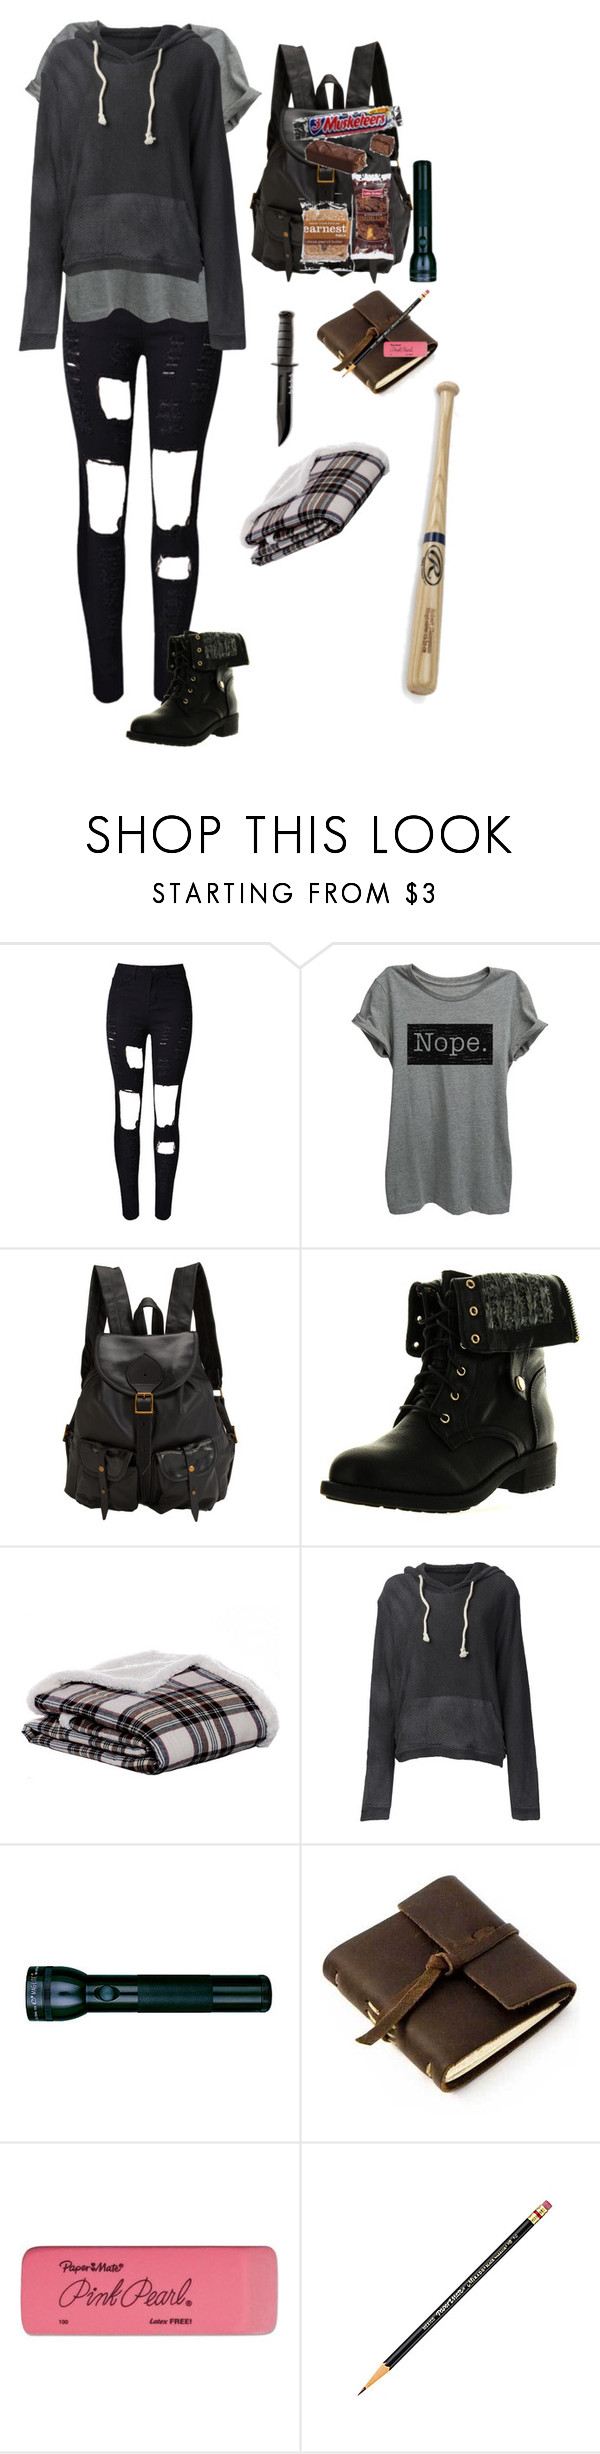 """""""apocalypse zumbie"""" by vivi-br ❤ liked on Polyvore featuring WithChic, Jas M.B., Refresh, Eddie Bauer, The Elder Statesman, Maglite, Rustico and Paper Mate"""